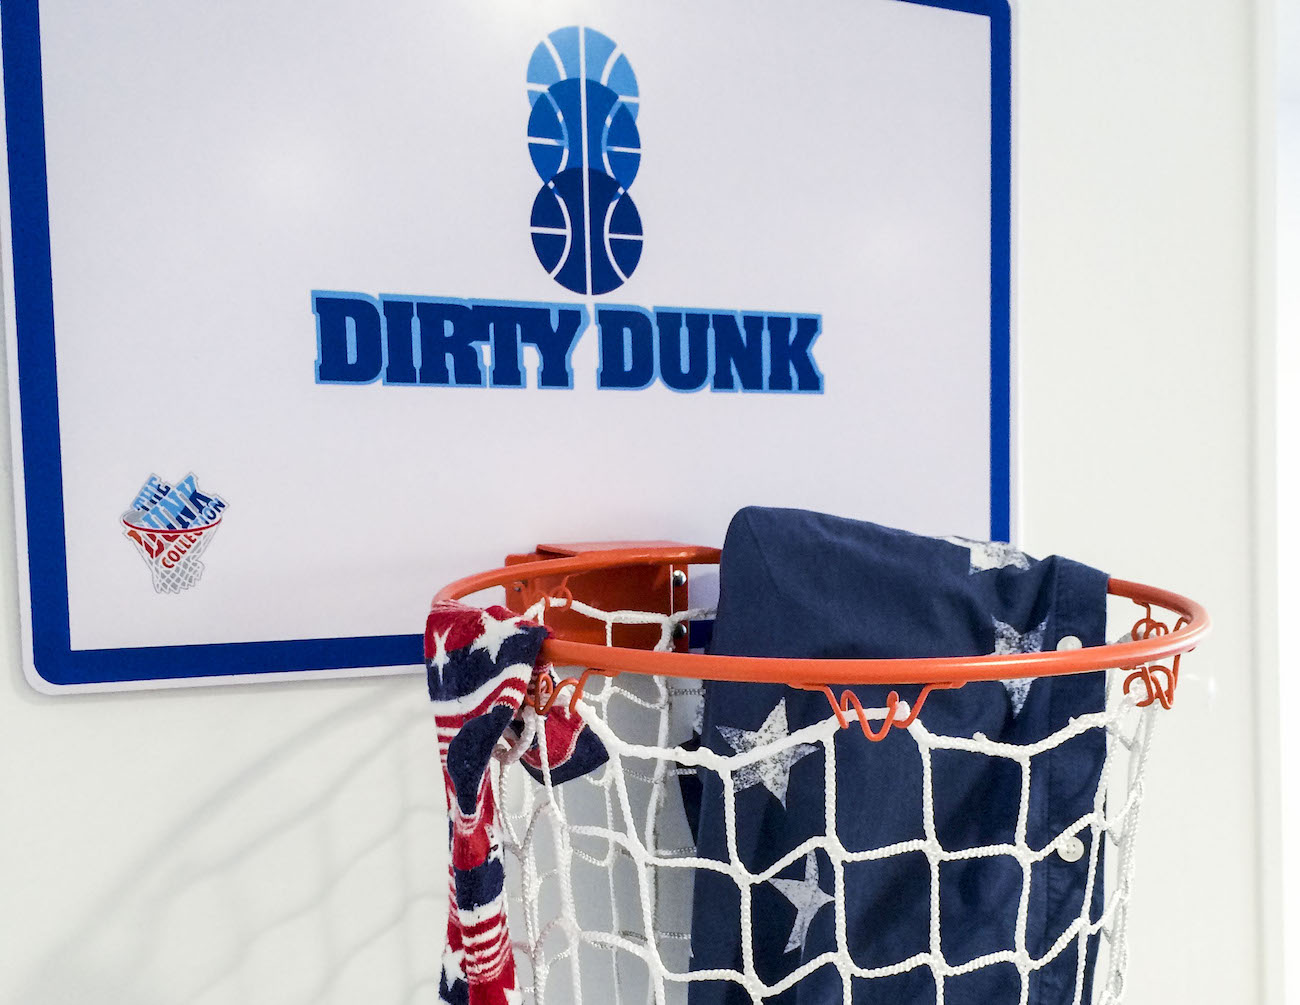 The Dirty Dunk The Original Over The Door Basketball